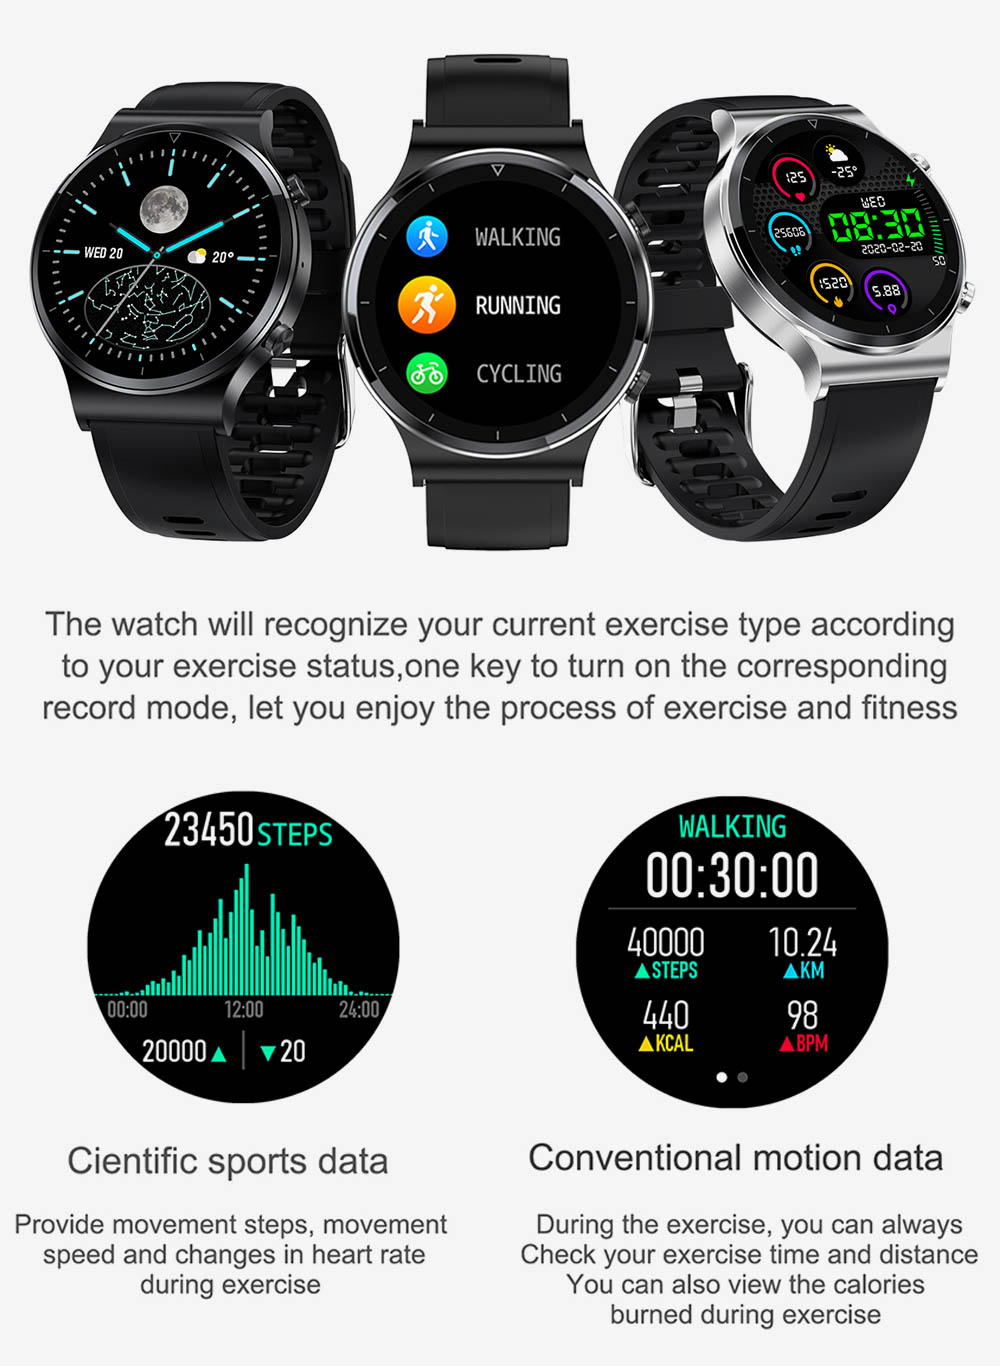 Hf73c2cf637884e208a02d896422bd75fZ NUOBO 2021 New Smart Watch Men Bluetooth Call Heart Rate Blood Pressure Sports IP68 Waterproof Smartwatch for Android IOS Phone